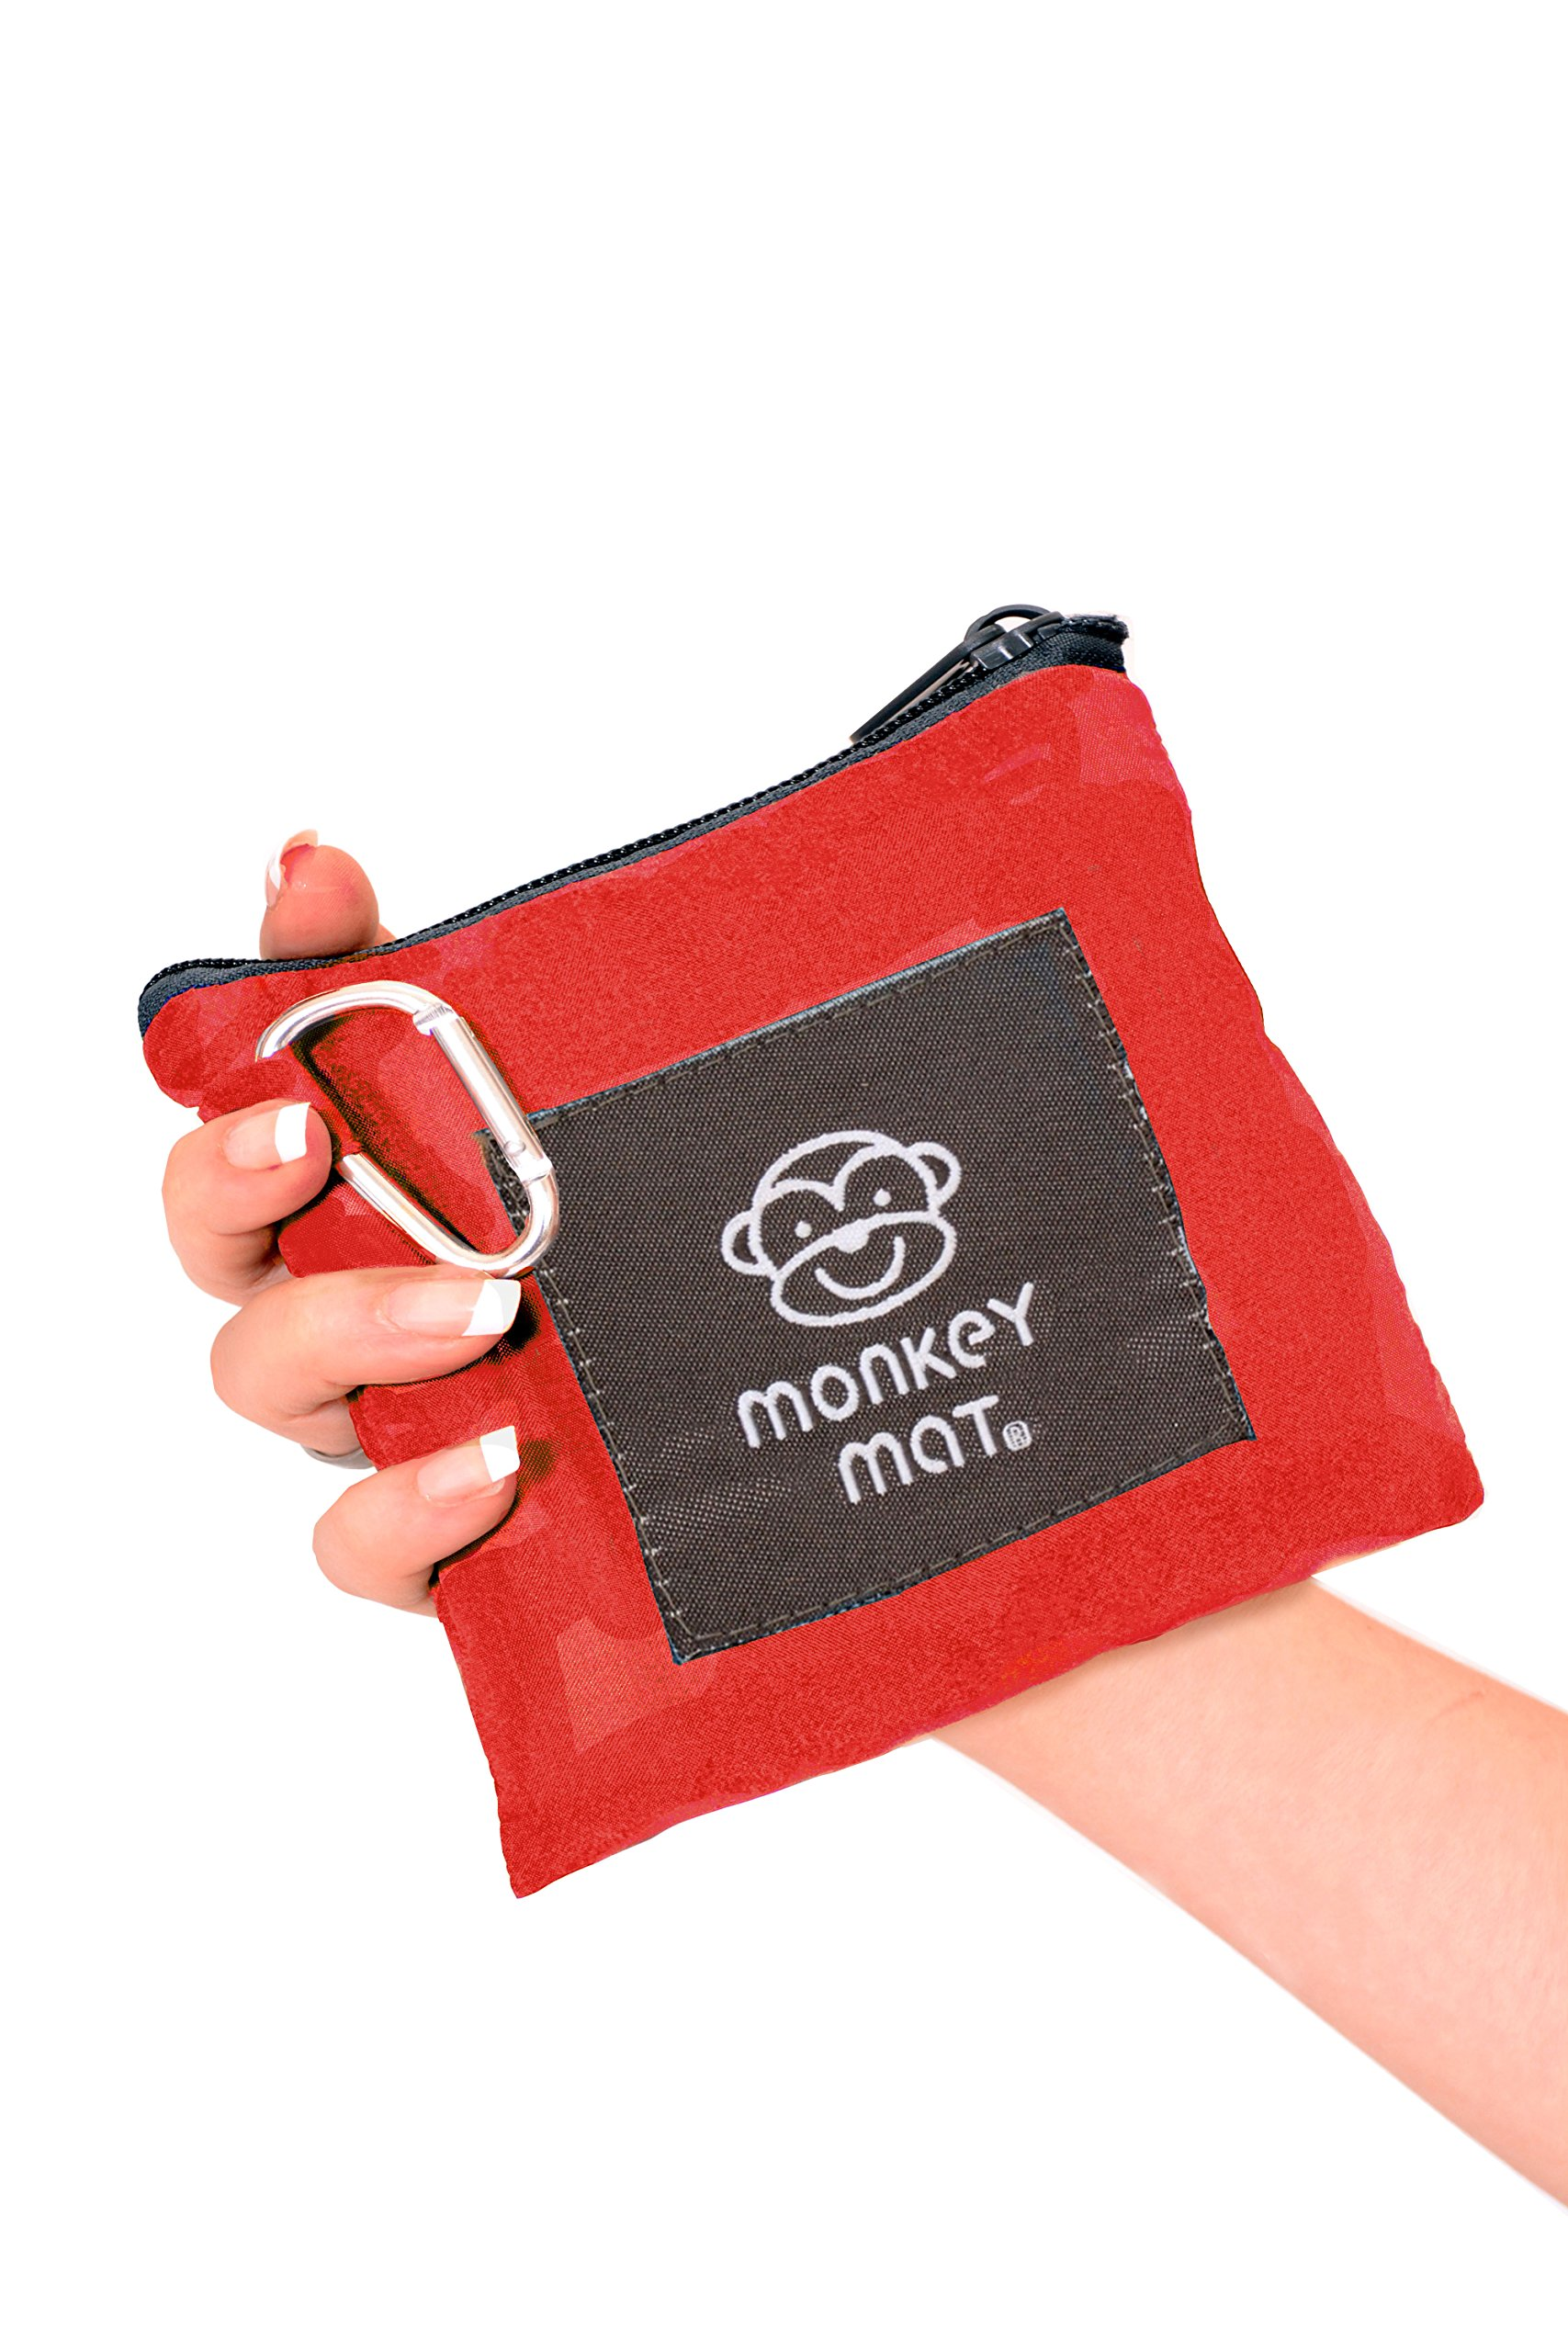 MONKEY MAT Portable Lightweight Indoor/Outdoor 5x5' Water/Sand Repellent Blanket with Corner Weights & Loops in Compact Pouch (Red Coral Crush)